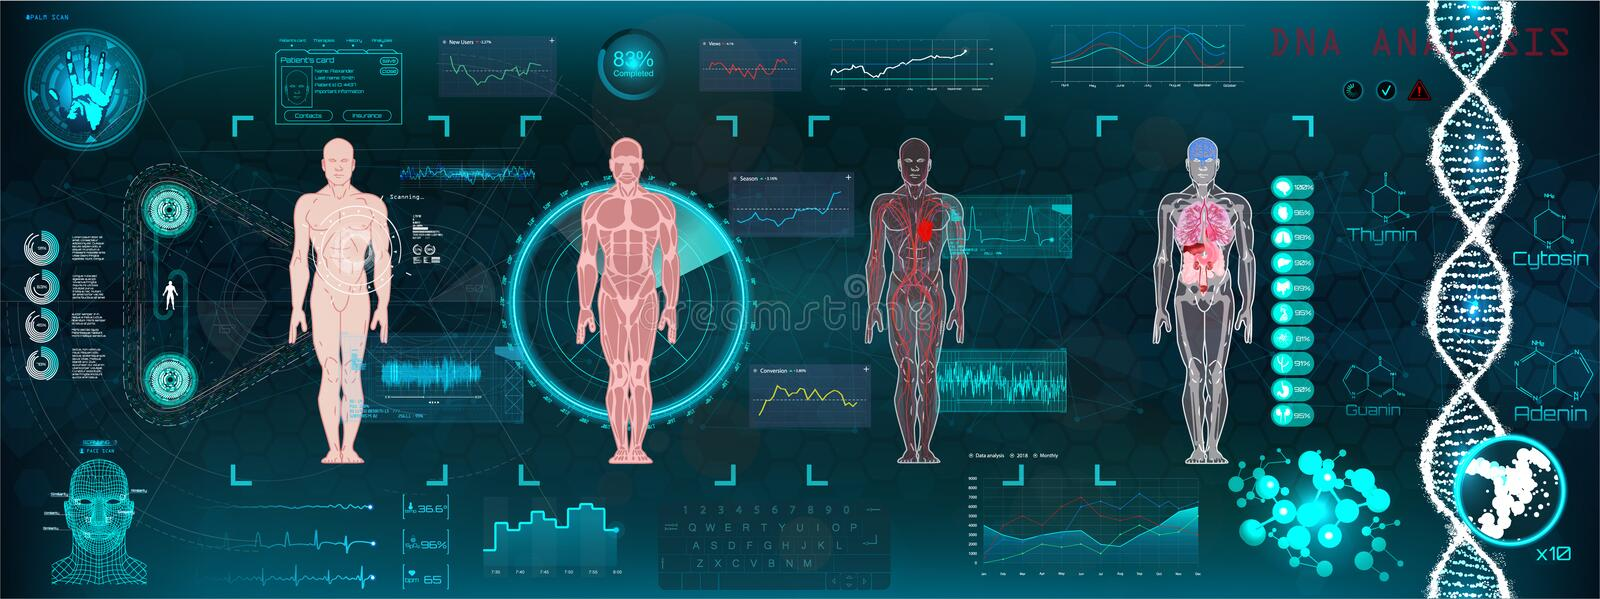 HUD healthcare A modern medical interface. A modern medical interface for monitoring human scanning and analysis, HUD healthcare. Medical interface. Abstract stock illustration